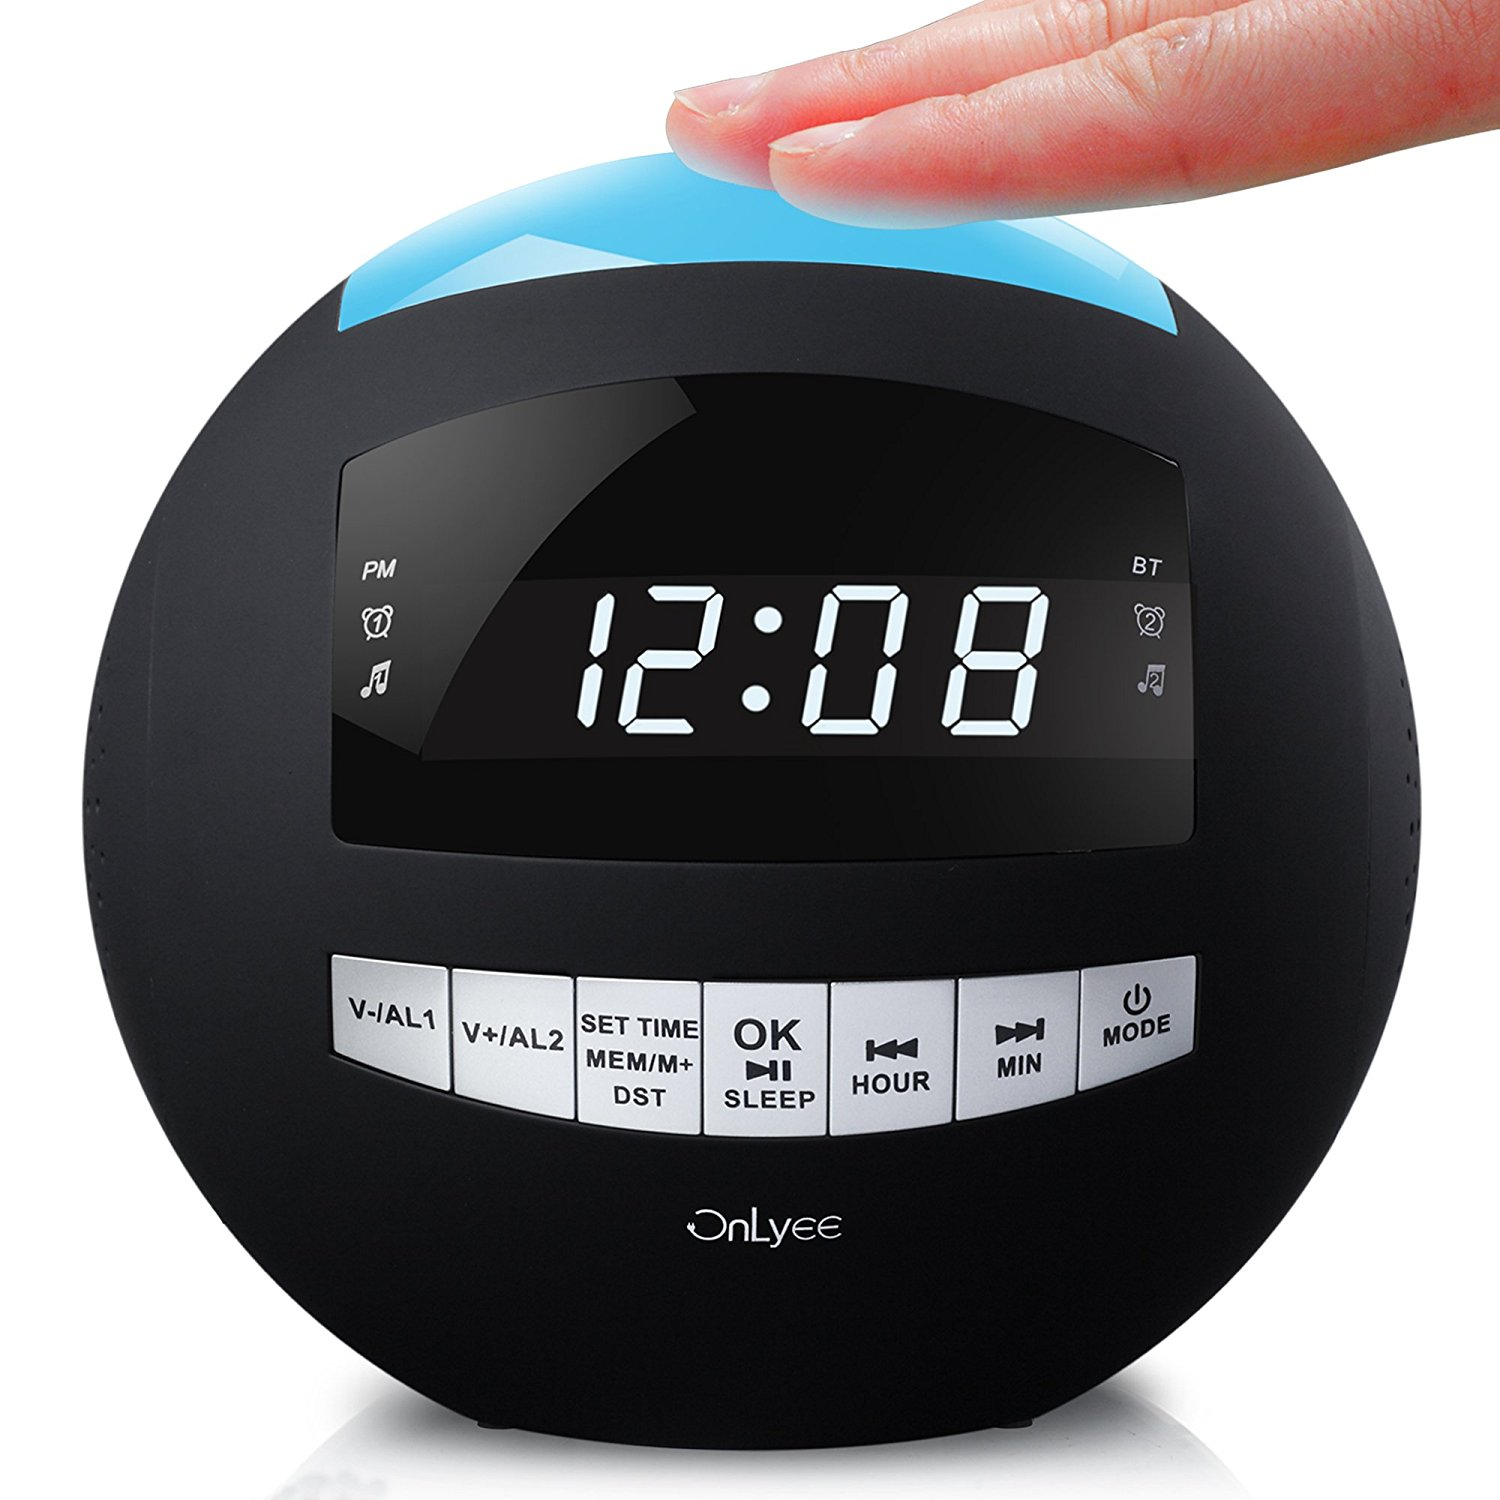 OnLyee Digital Dimmable Alarm Clock Radio & Wireless Bluetooth Speaker with AM FM,Speakerphone,Dual USB Charging,Multi-Color LED Night Light